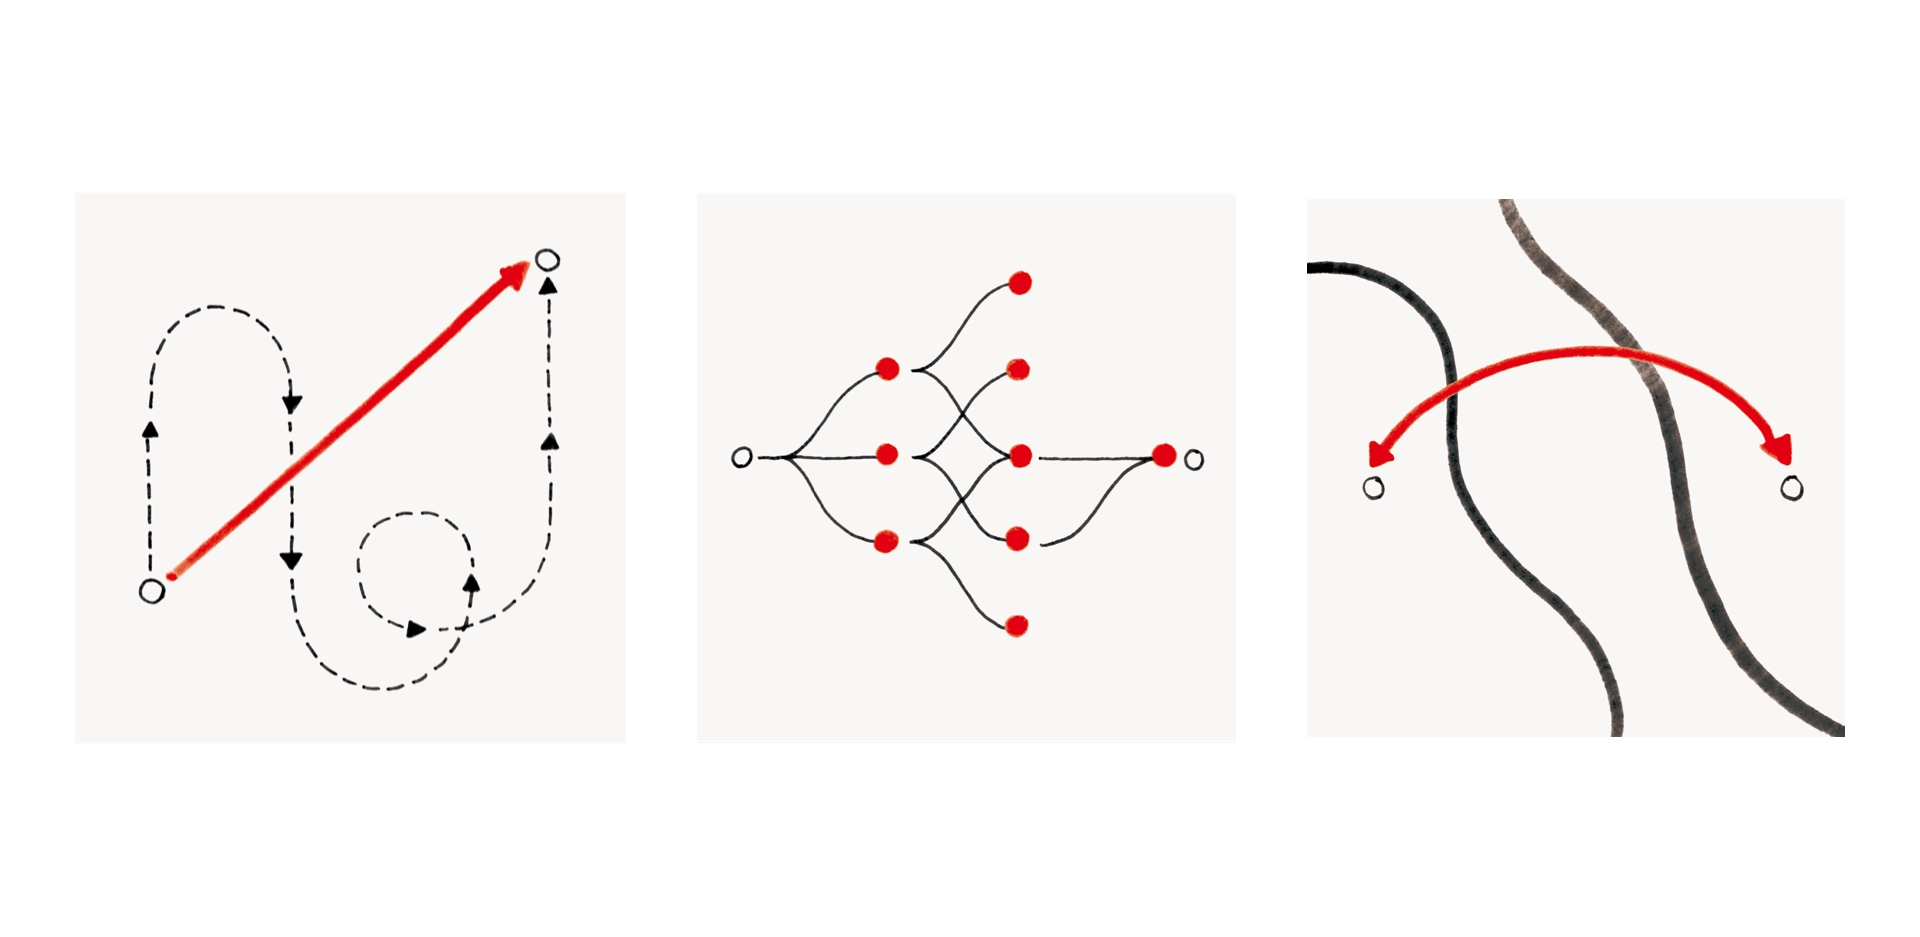 Three abstract illustrations showing speed, experimentation and connection